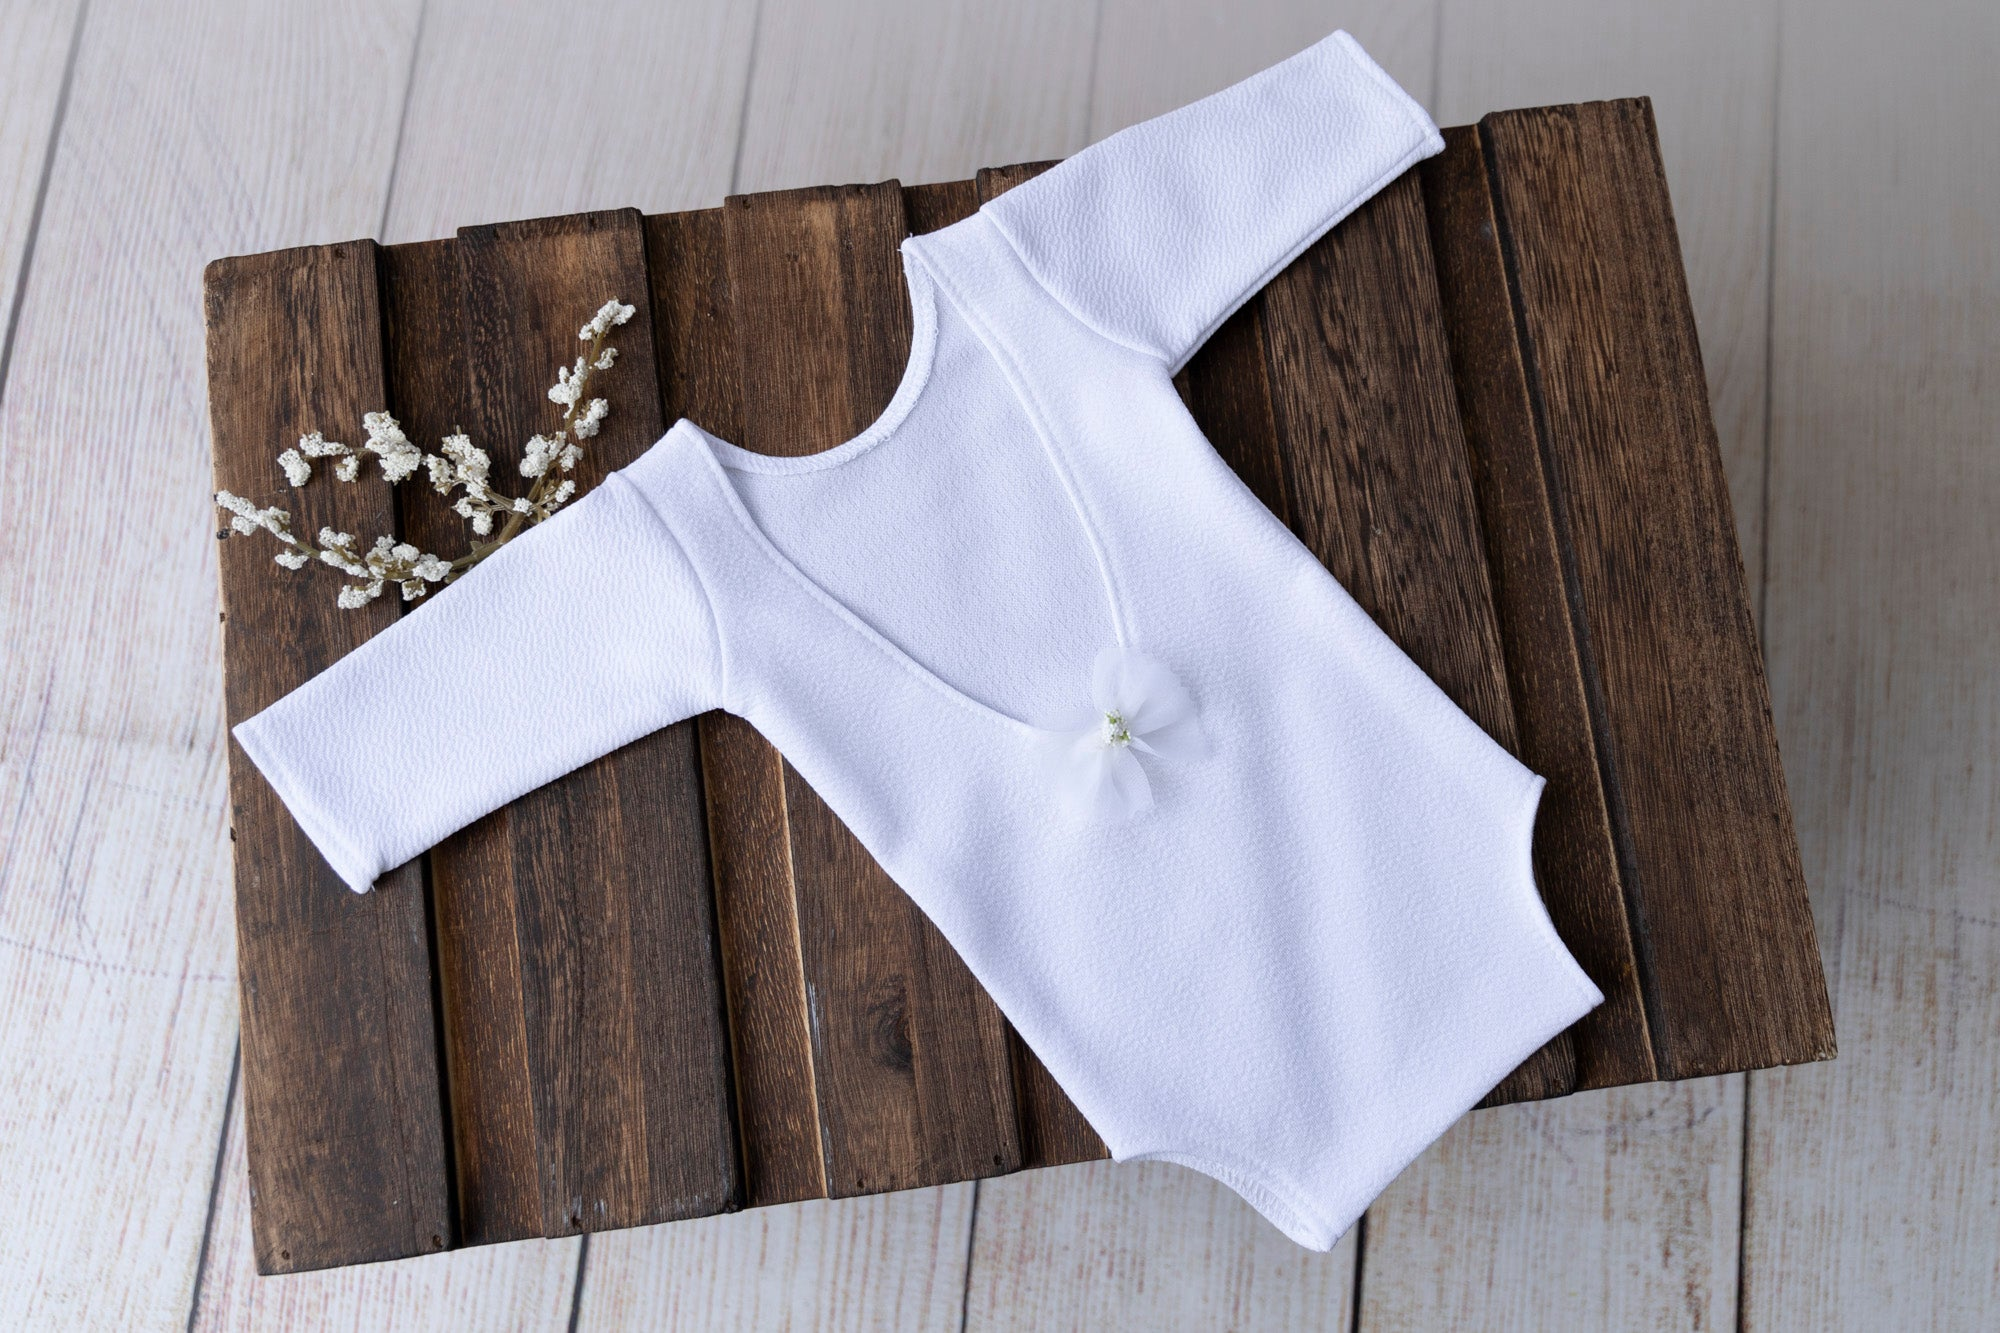 Bodysuit with Bow - Textured - White